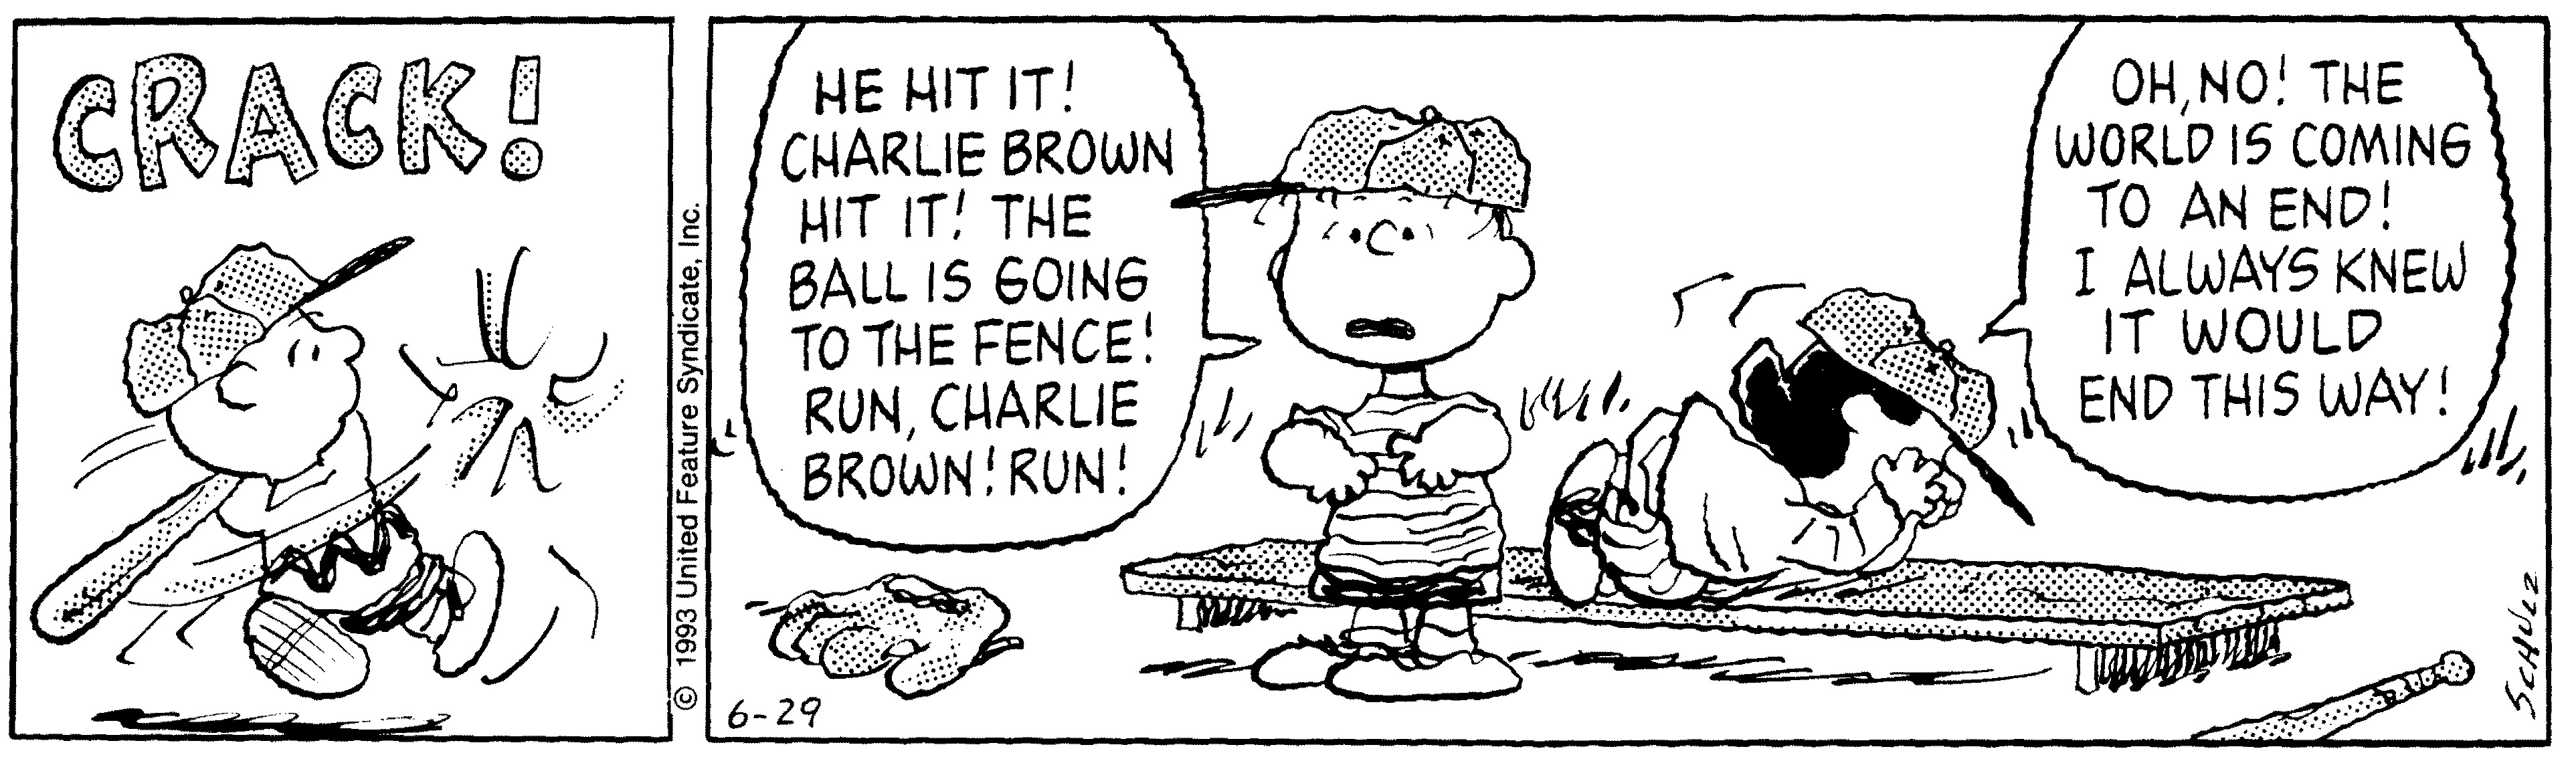 PEANUTS © 1993 Peanuts Worldwide LLC. Dist. By ANDREWS MCMEEL SYNDICATION. Reprinted with permission. All rights reserved.